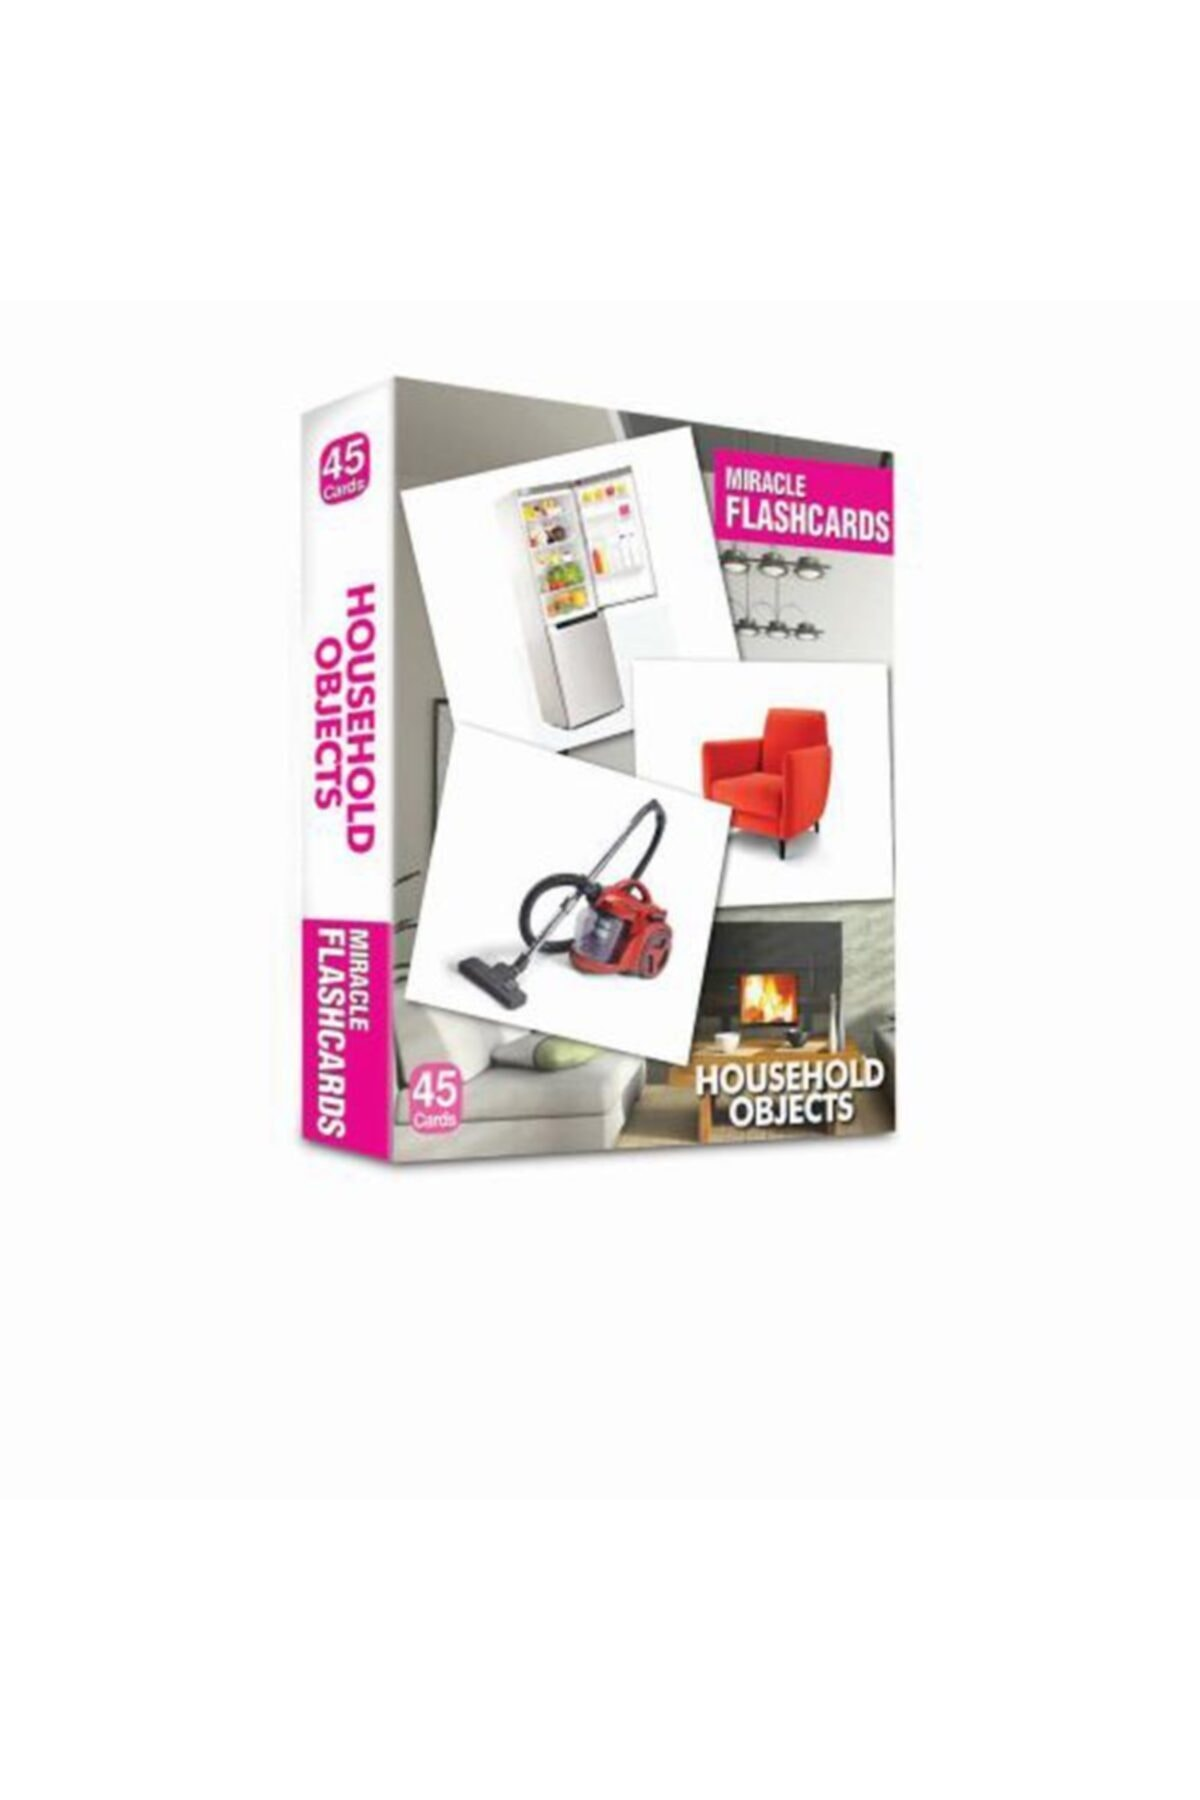 Mıracle Flashcards Household Objects 45 Cards